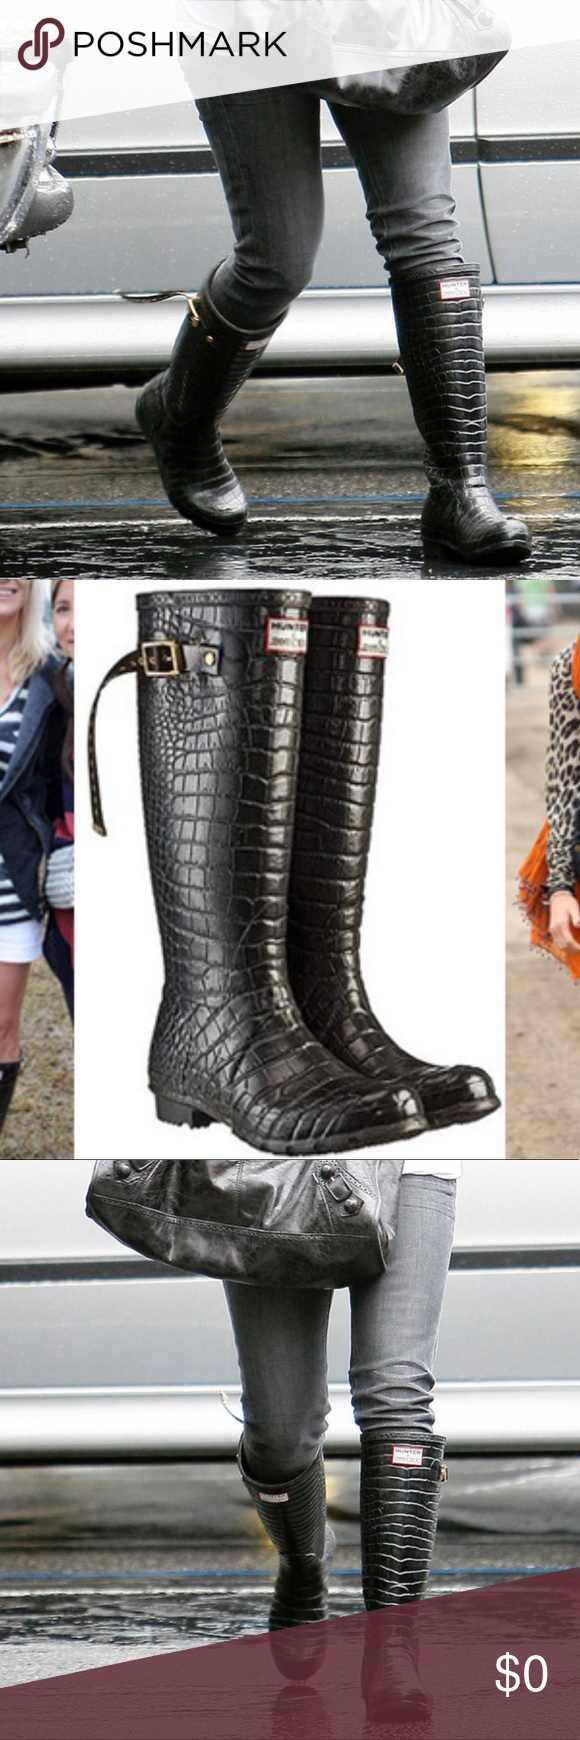 78e6a3518c1 Tall Hunter Croc boots by Jimmy Choo x Hunter Black rubber Jimmy Choo x  Hunter knee-high rain boots! Tall and absolutely gorgeous